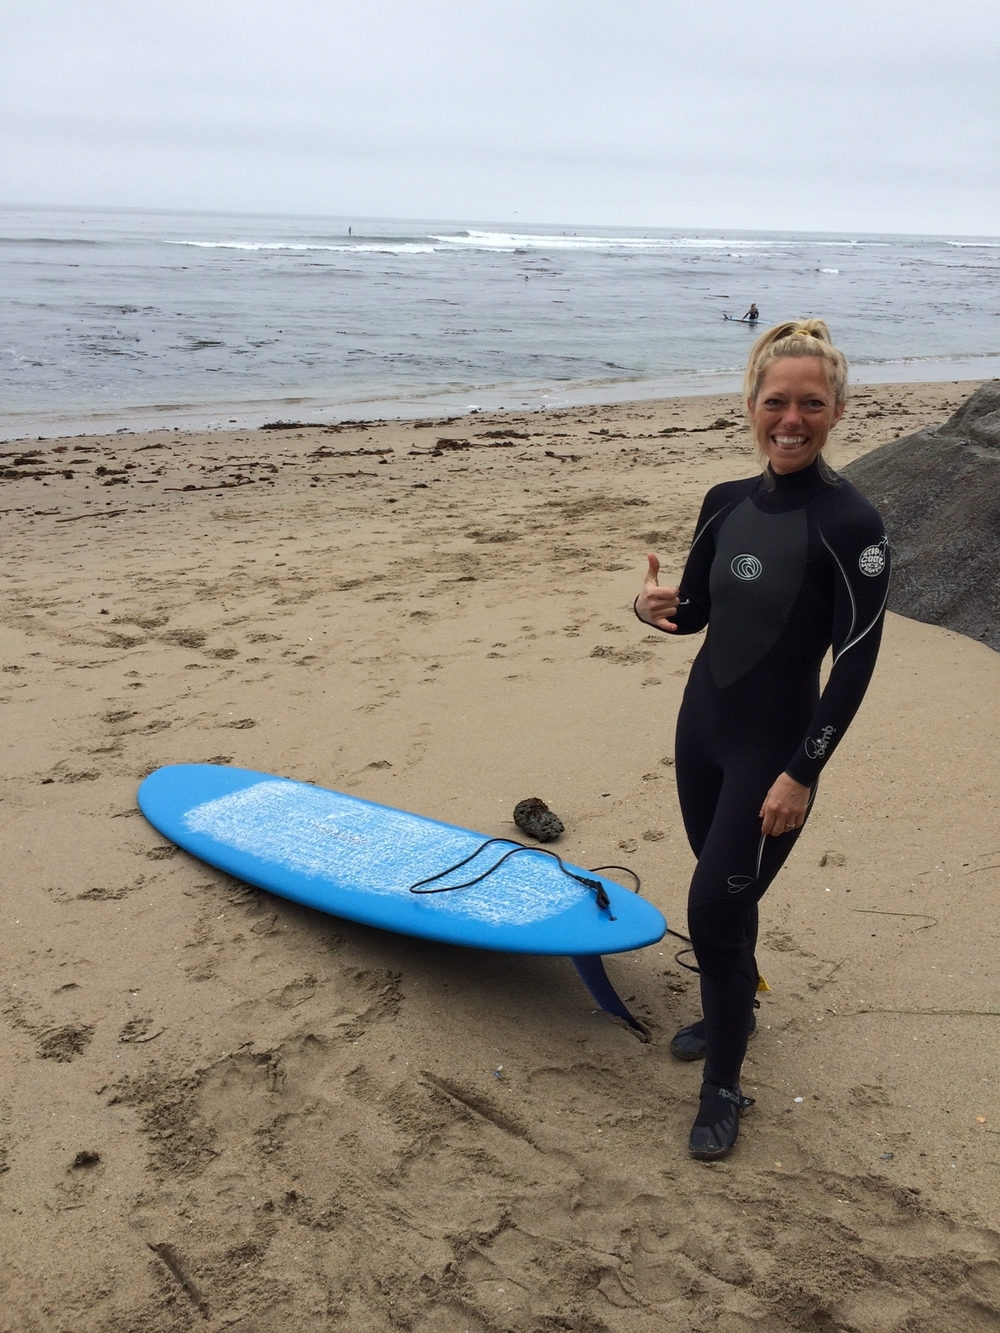 Pamela ready for her lesson in Santa Cruz.